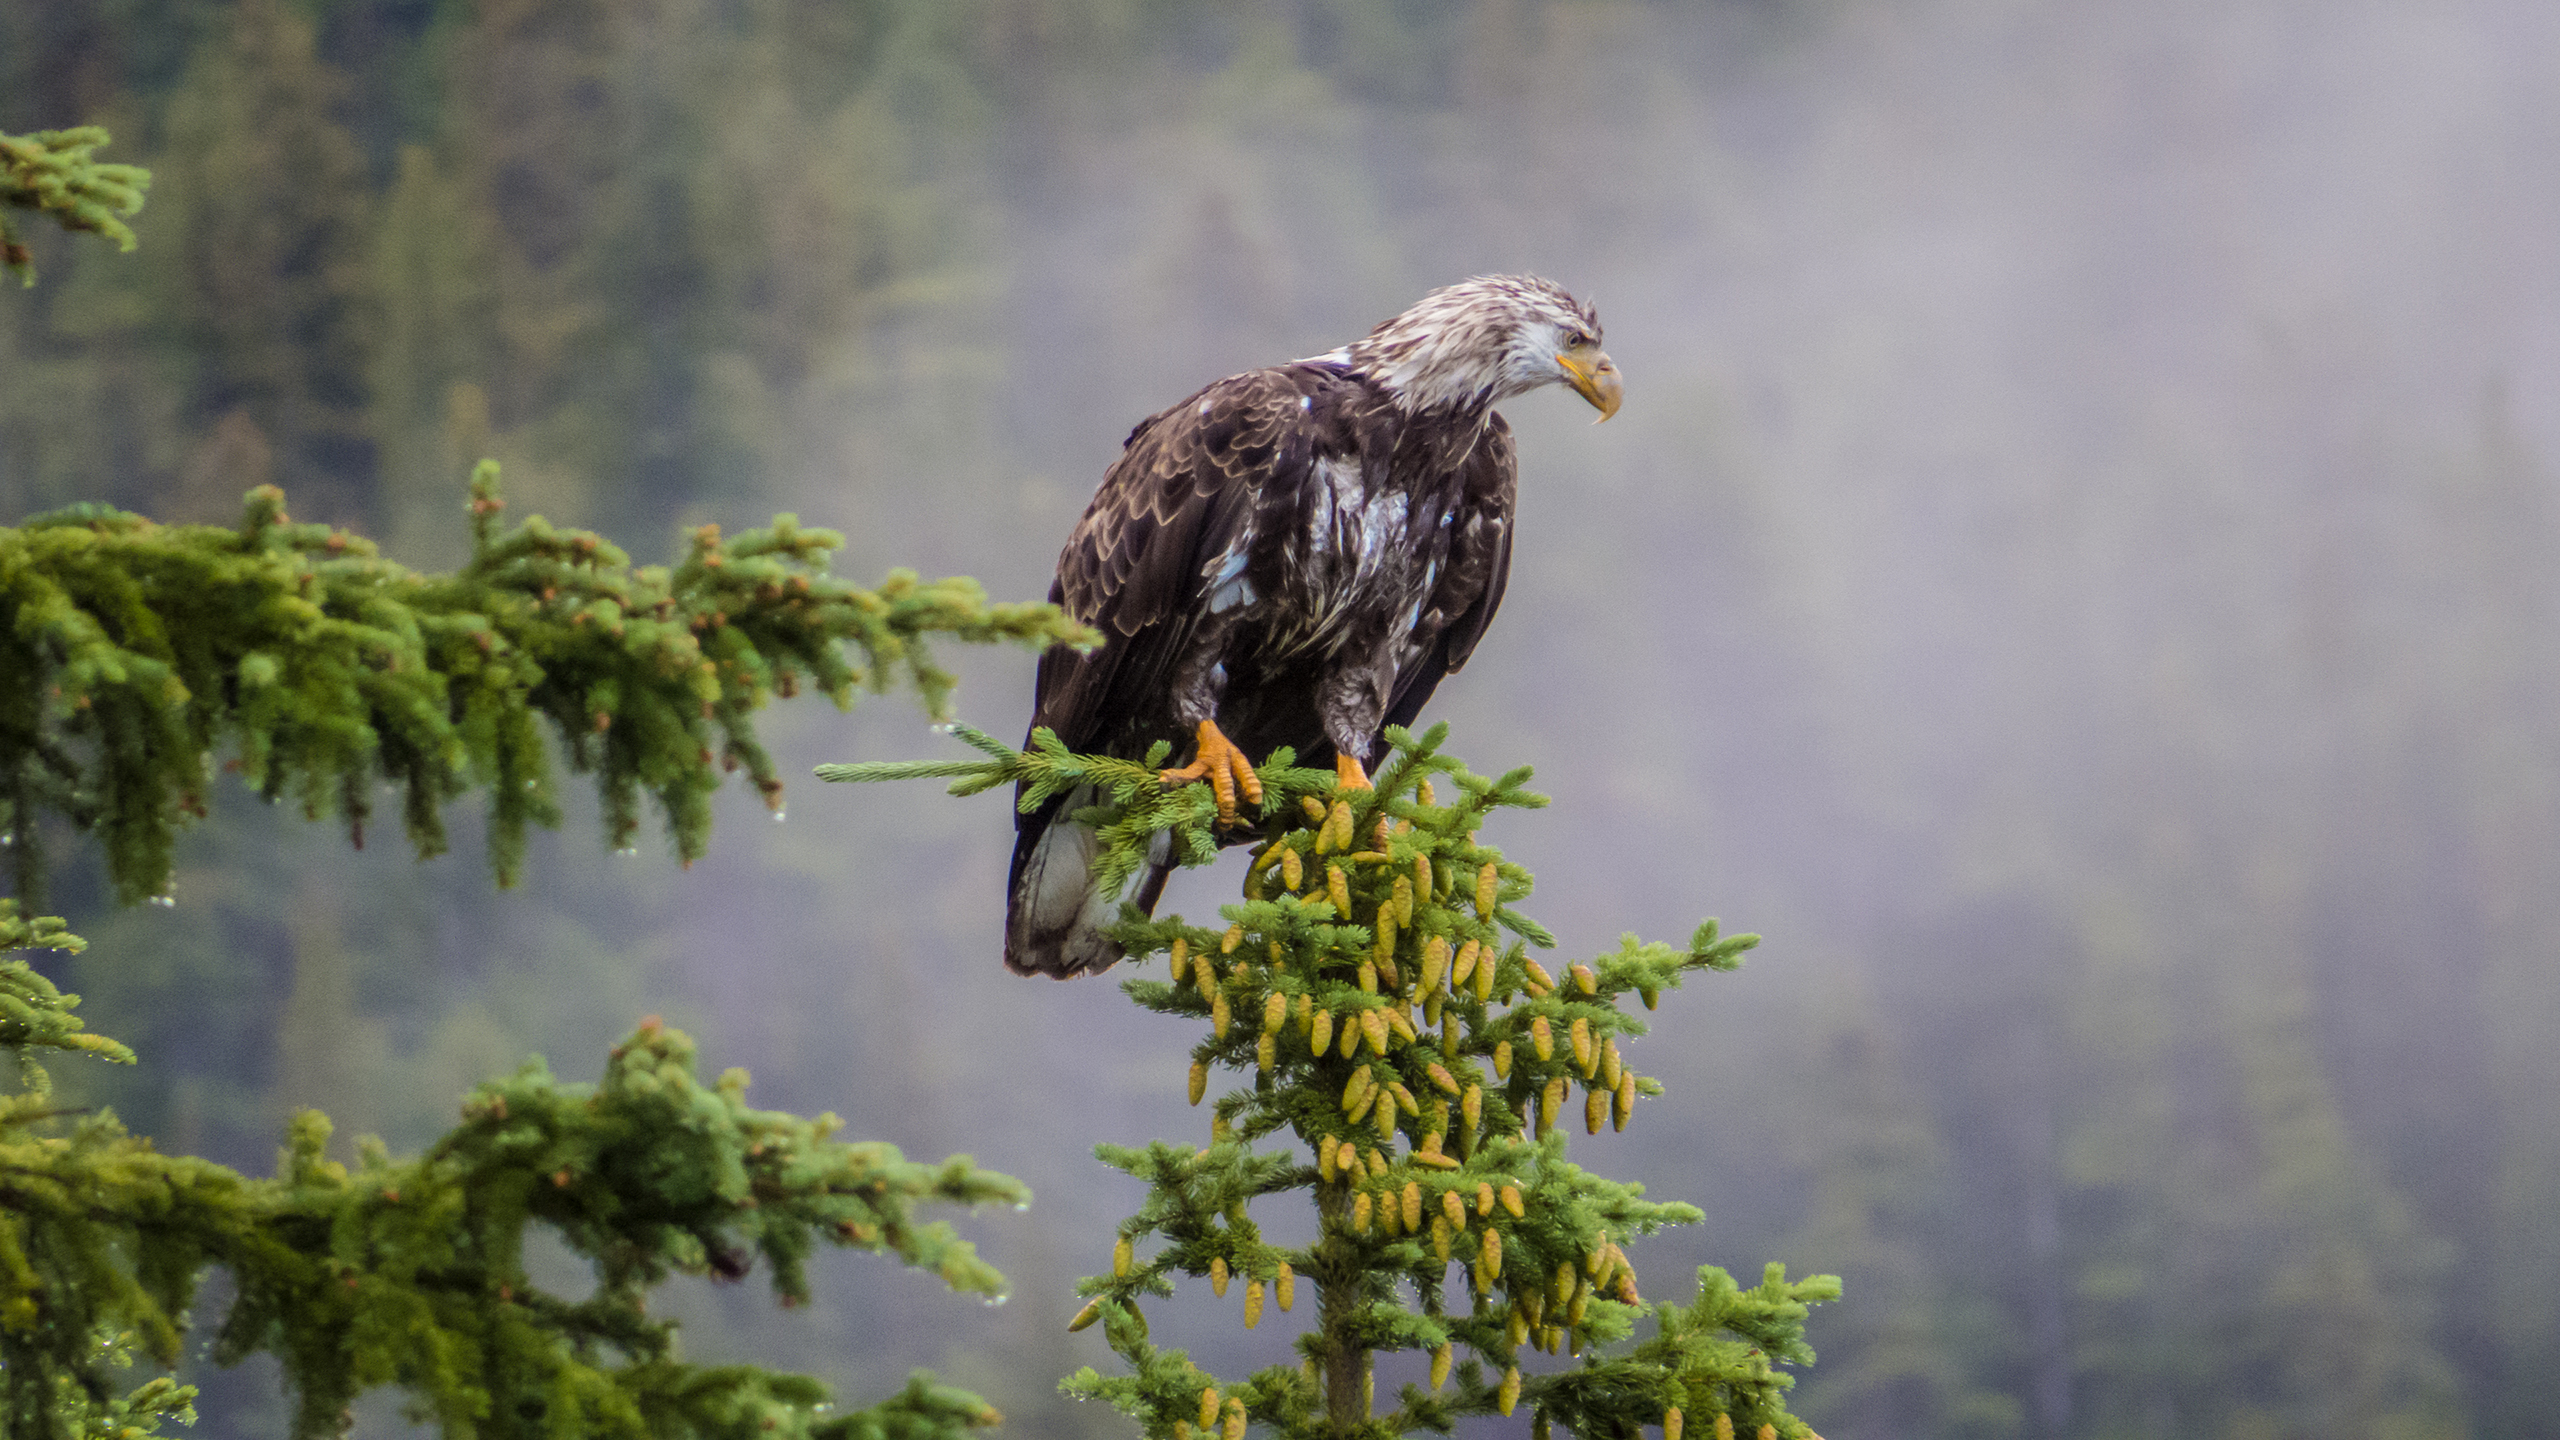 bald_eagle_wallpaper_2560x1440